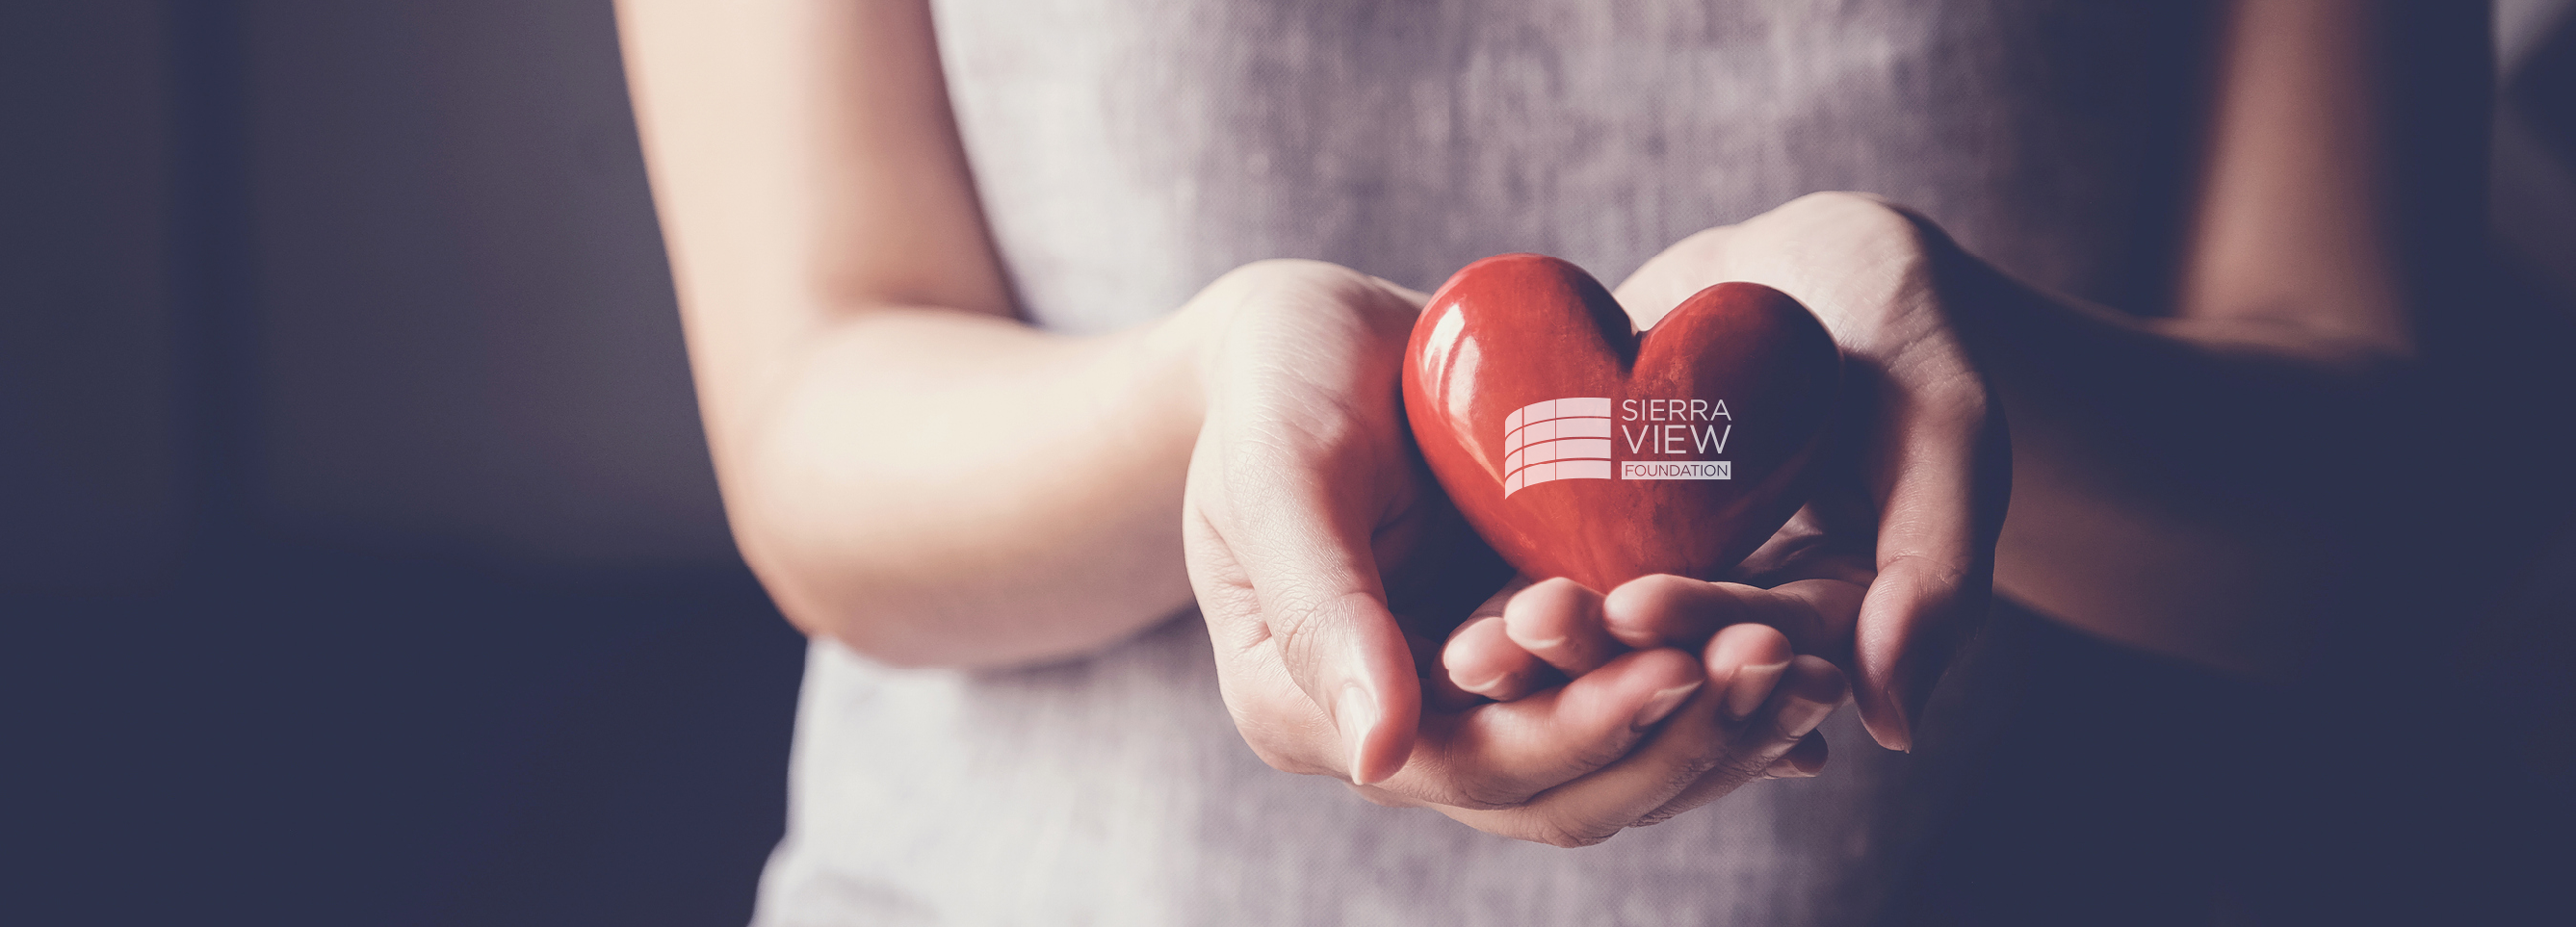 Image of woman holding ceramic heart in hands with Sierra View Foundation logo.